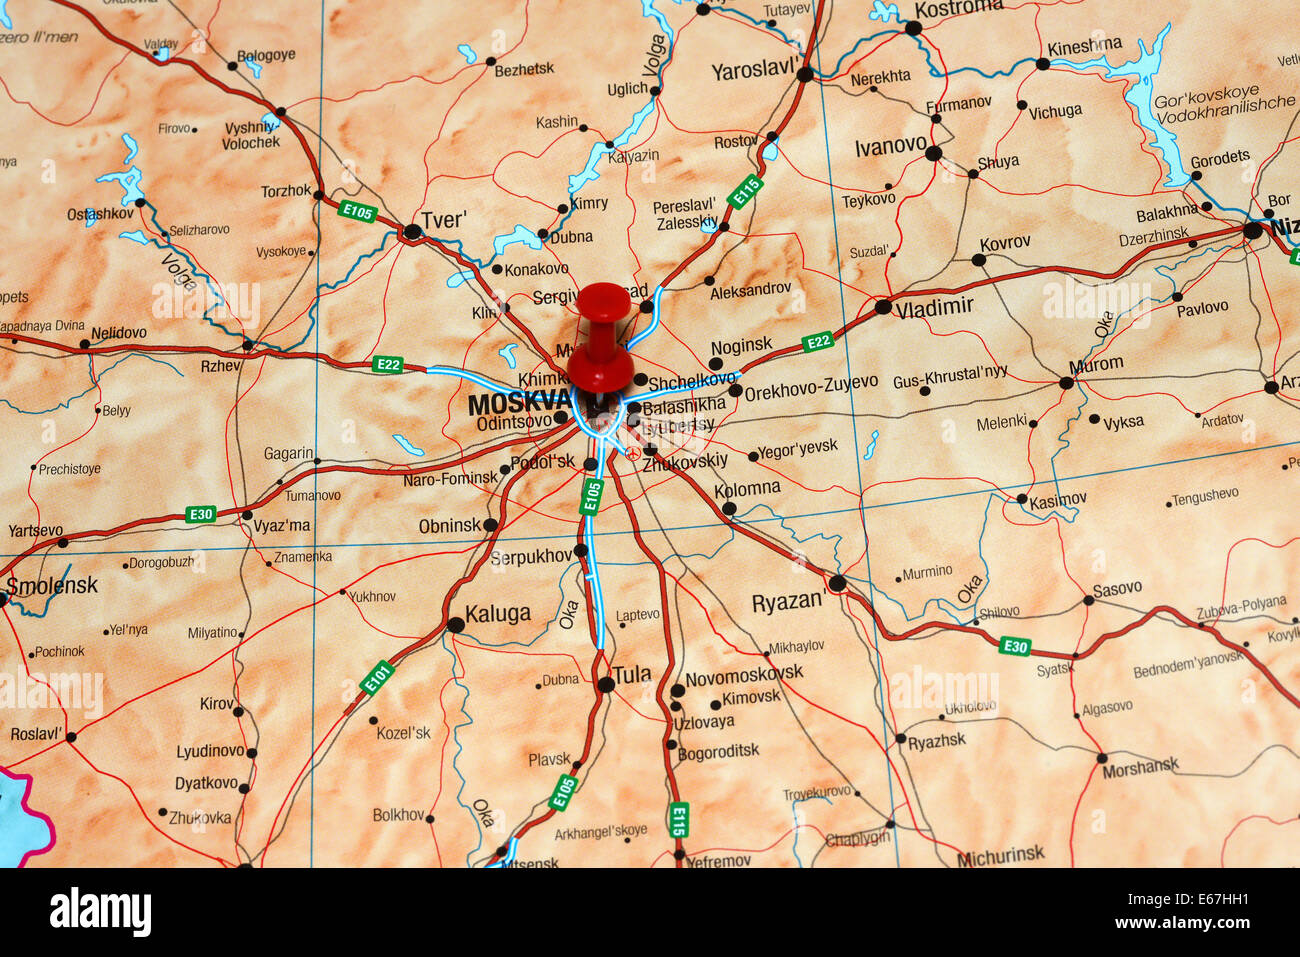 Moscow Pinned On A Map Of Europe Stock Photo 72696877 Alamy